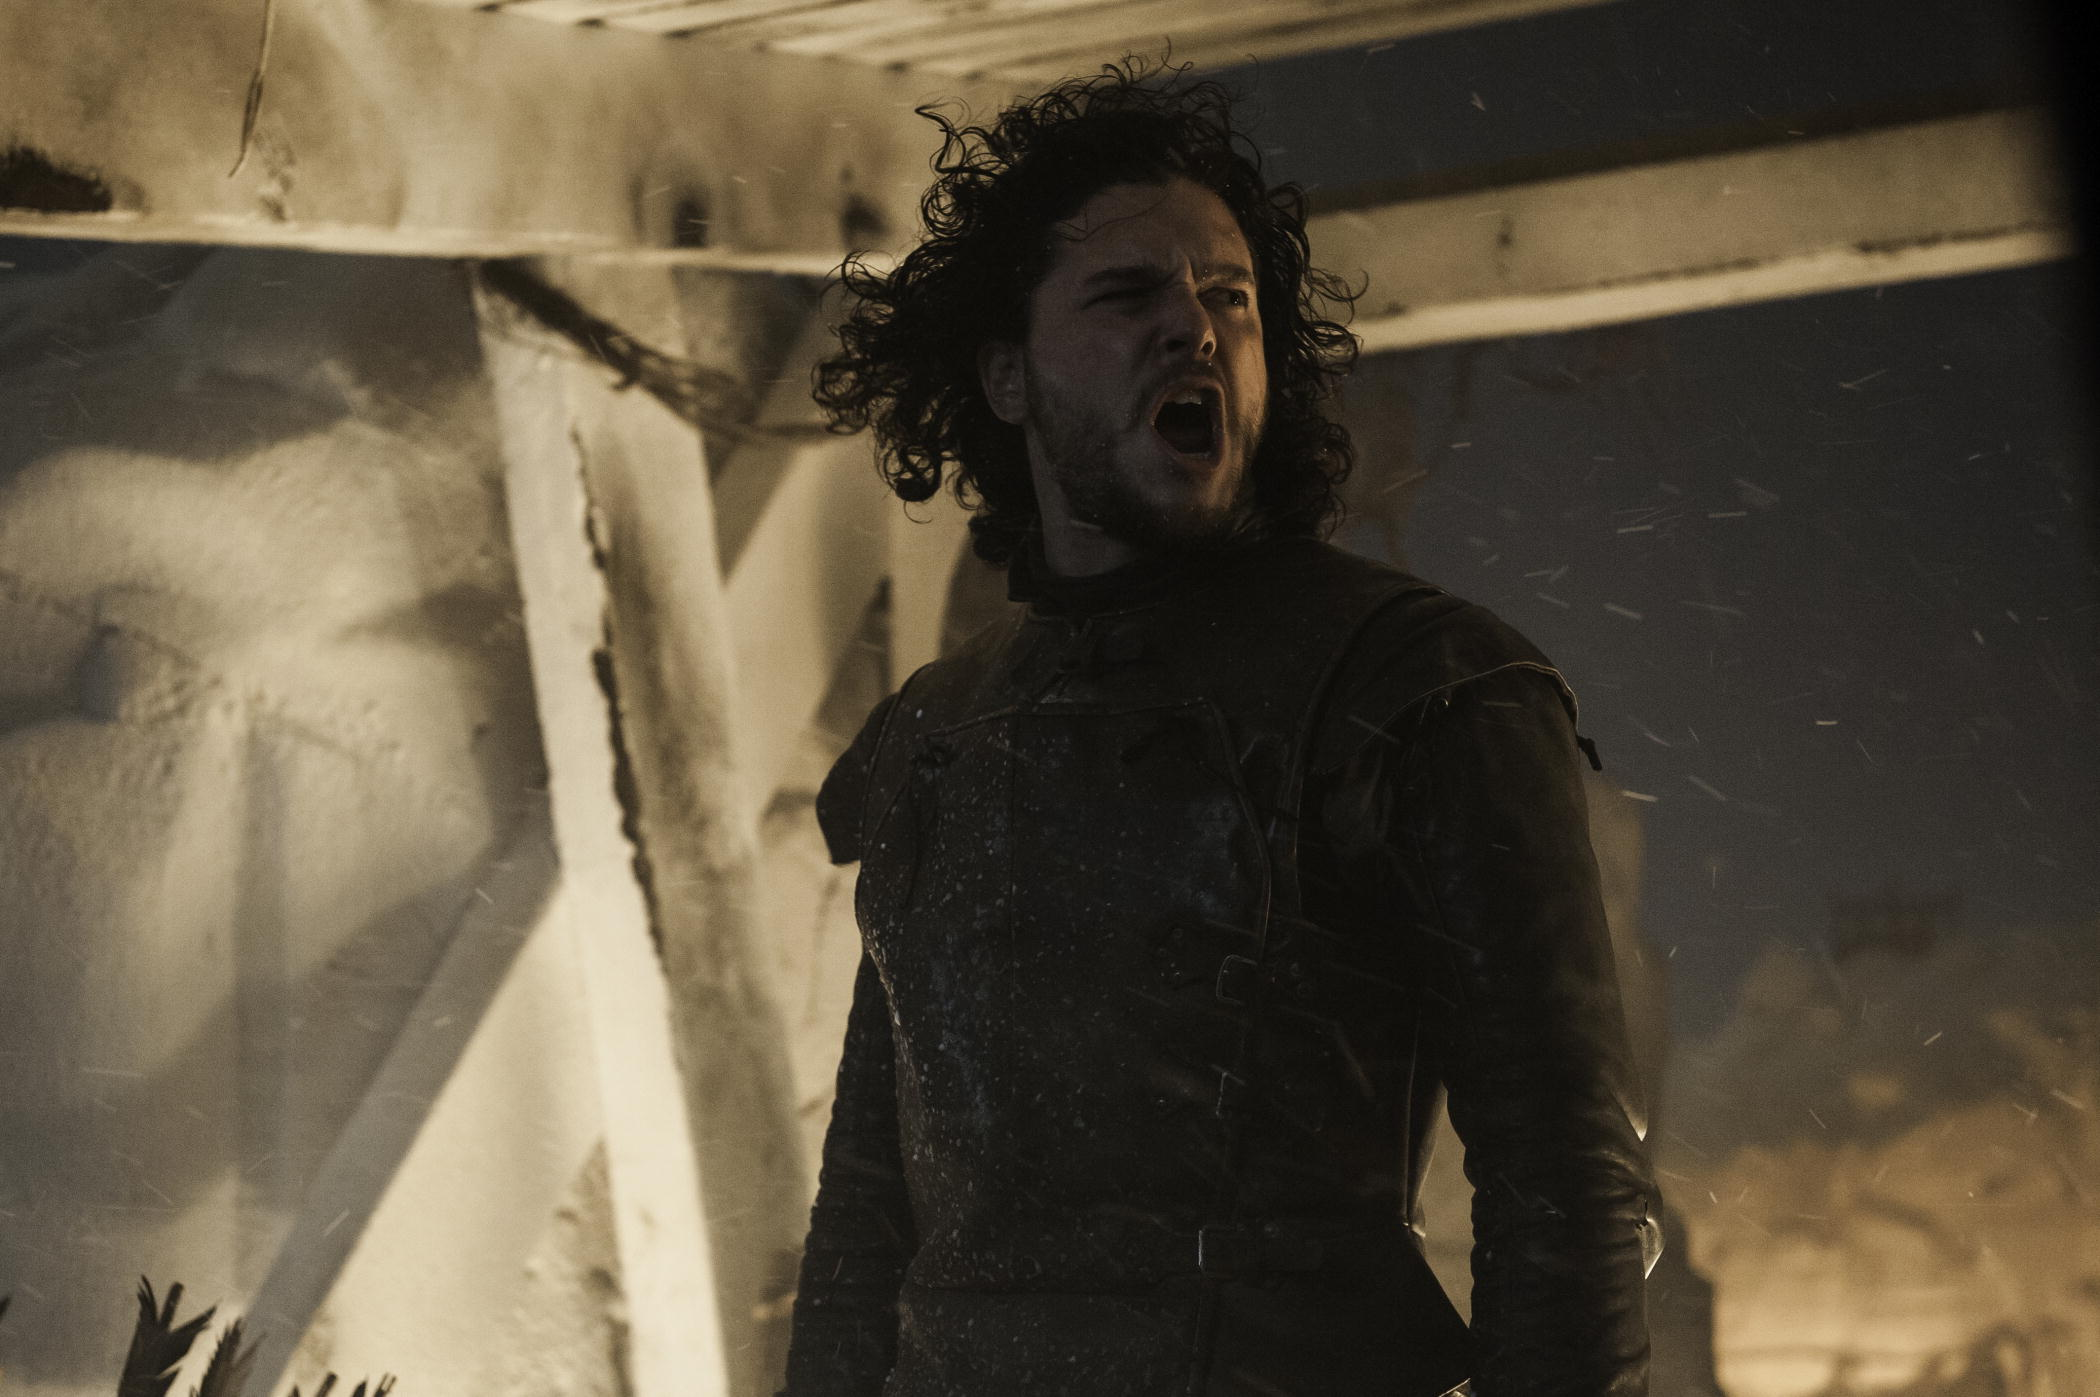 Season-4-Episode-9-The-Watchers-on-the-Wall-game-of-thrones-37169832-2100-1397.jpg